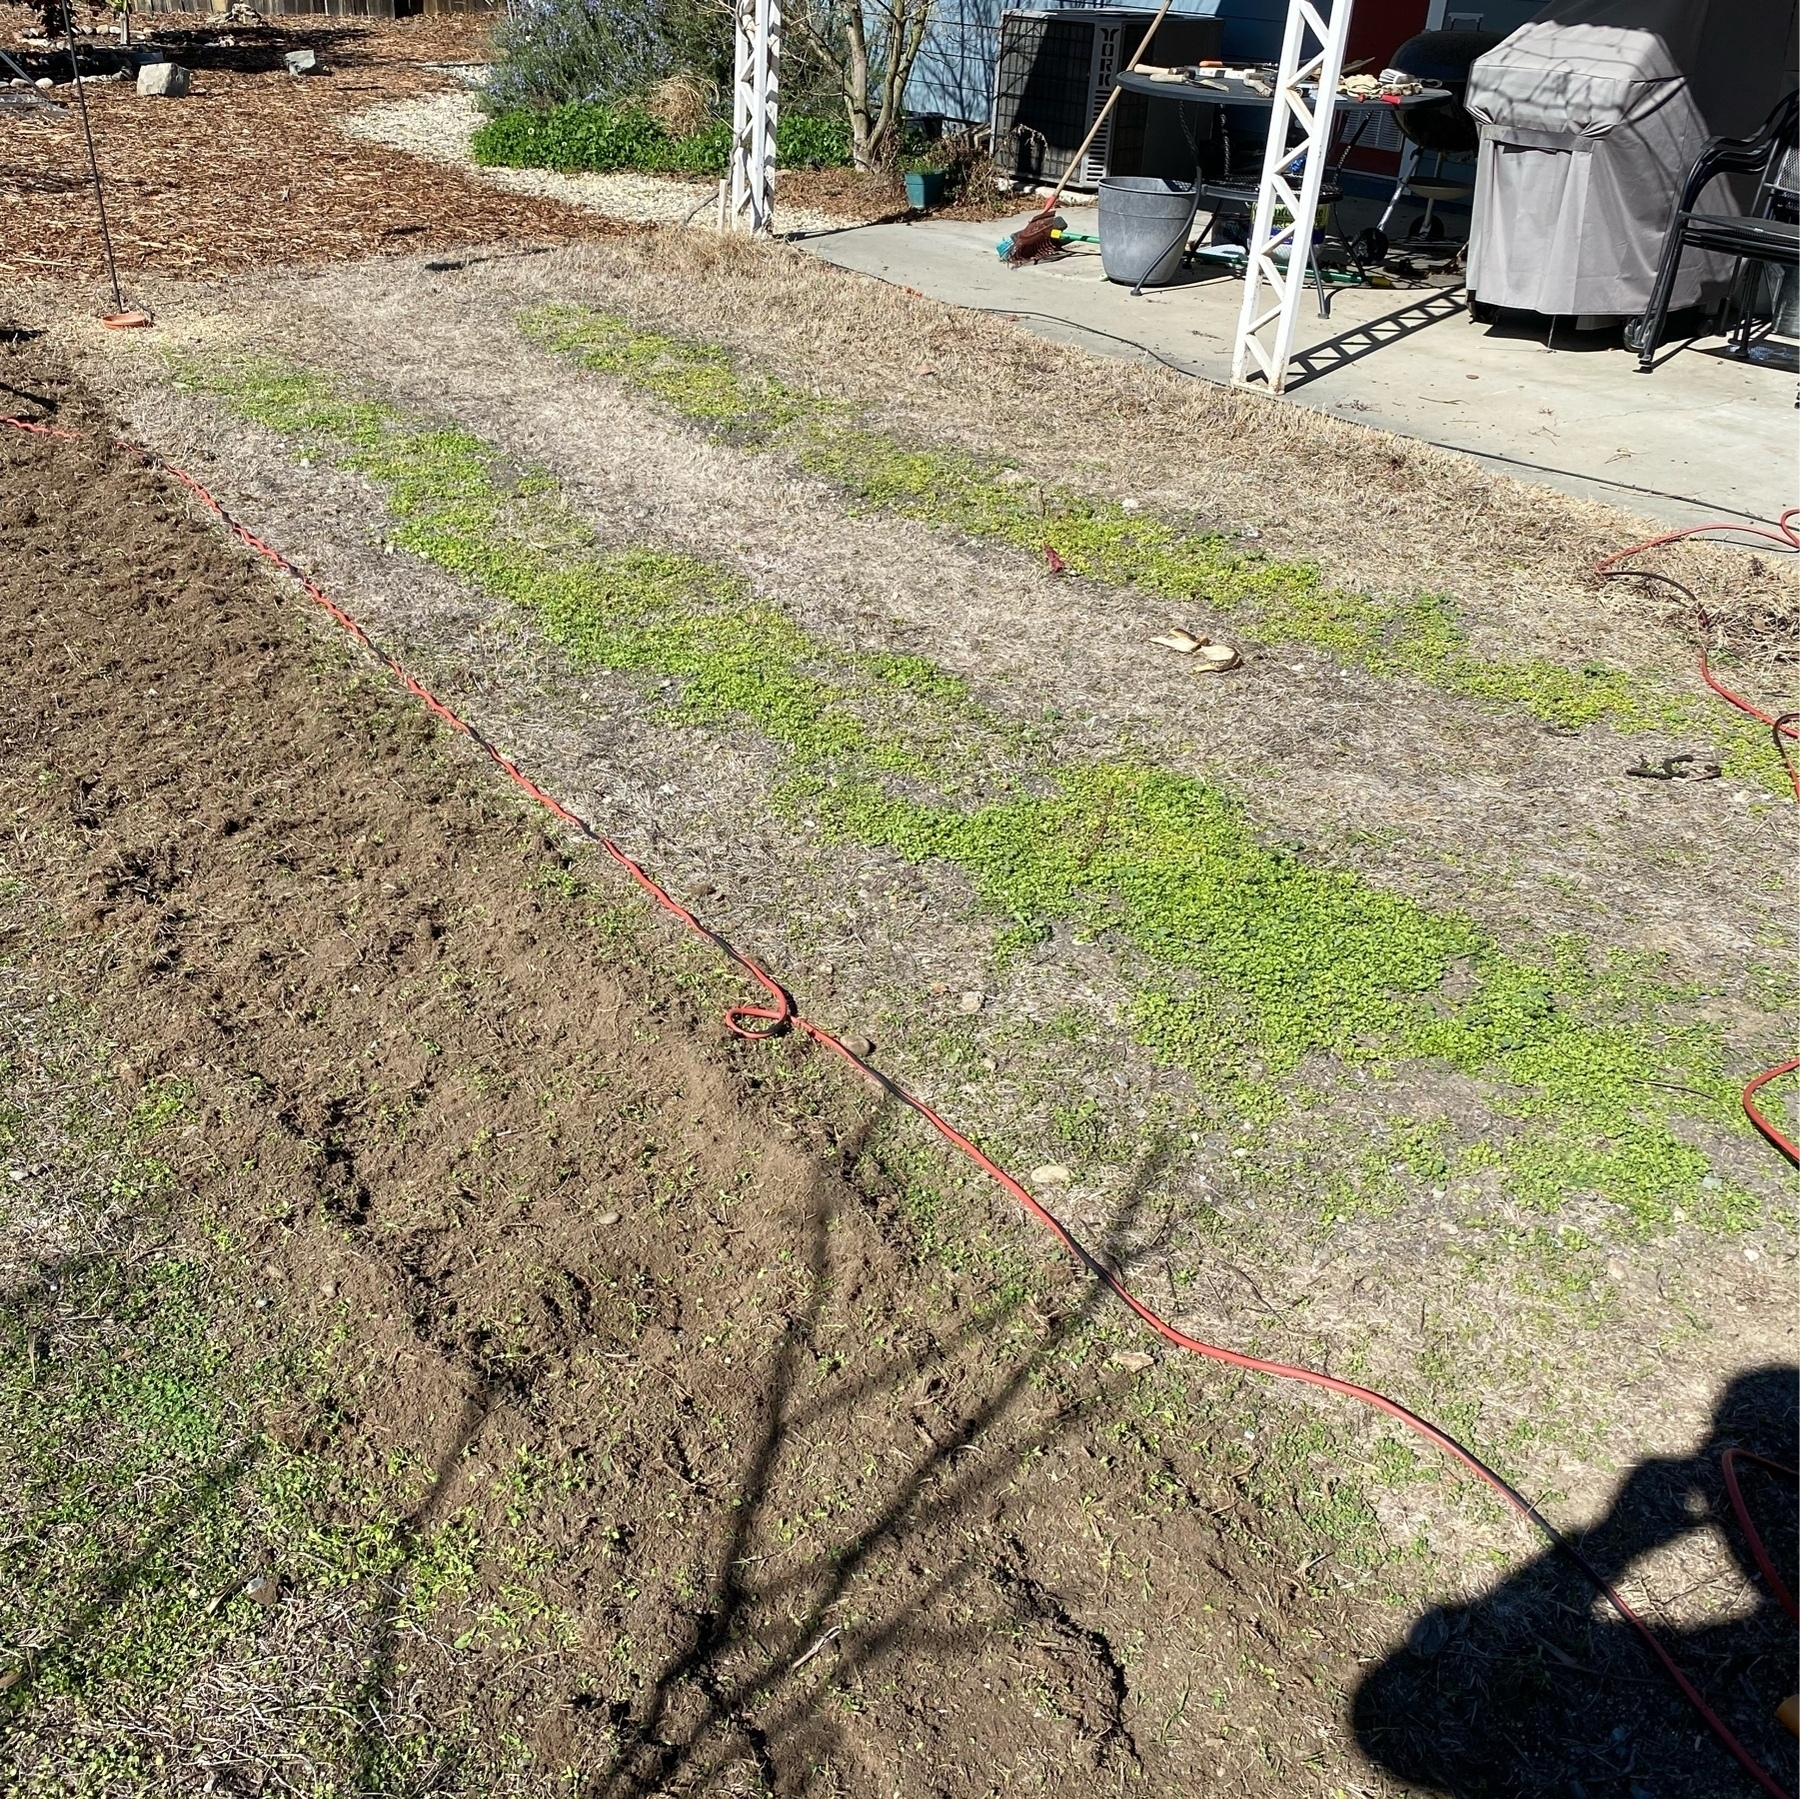 before most of the lawn removal, showing three garden rows but not yet prepared